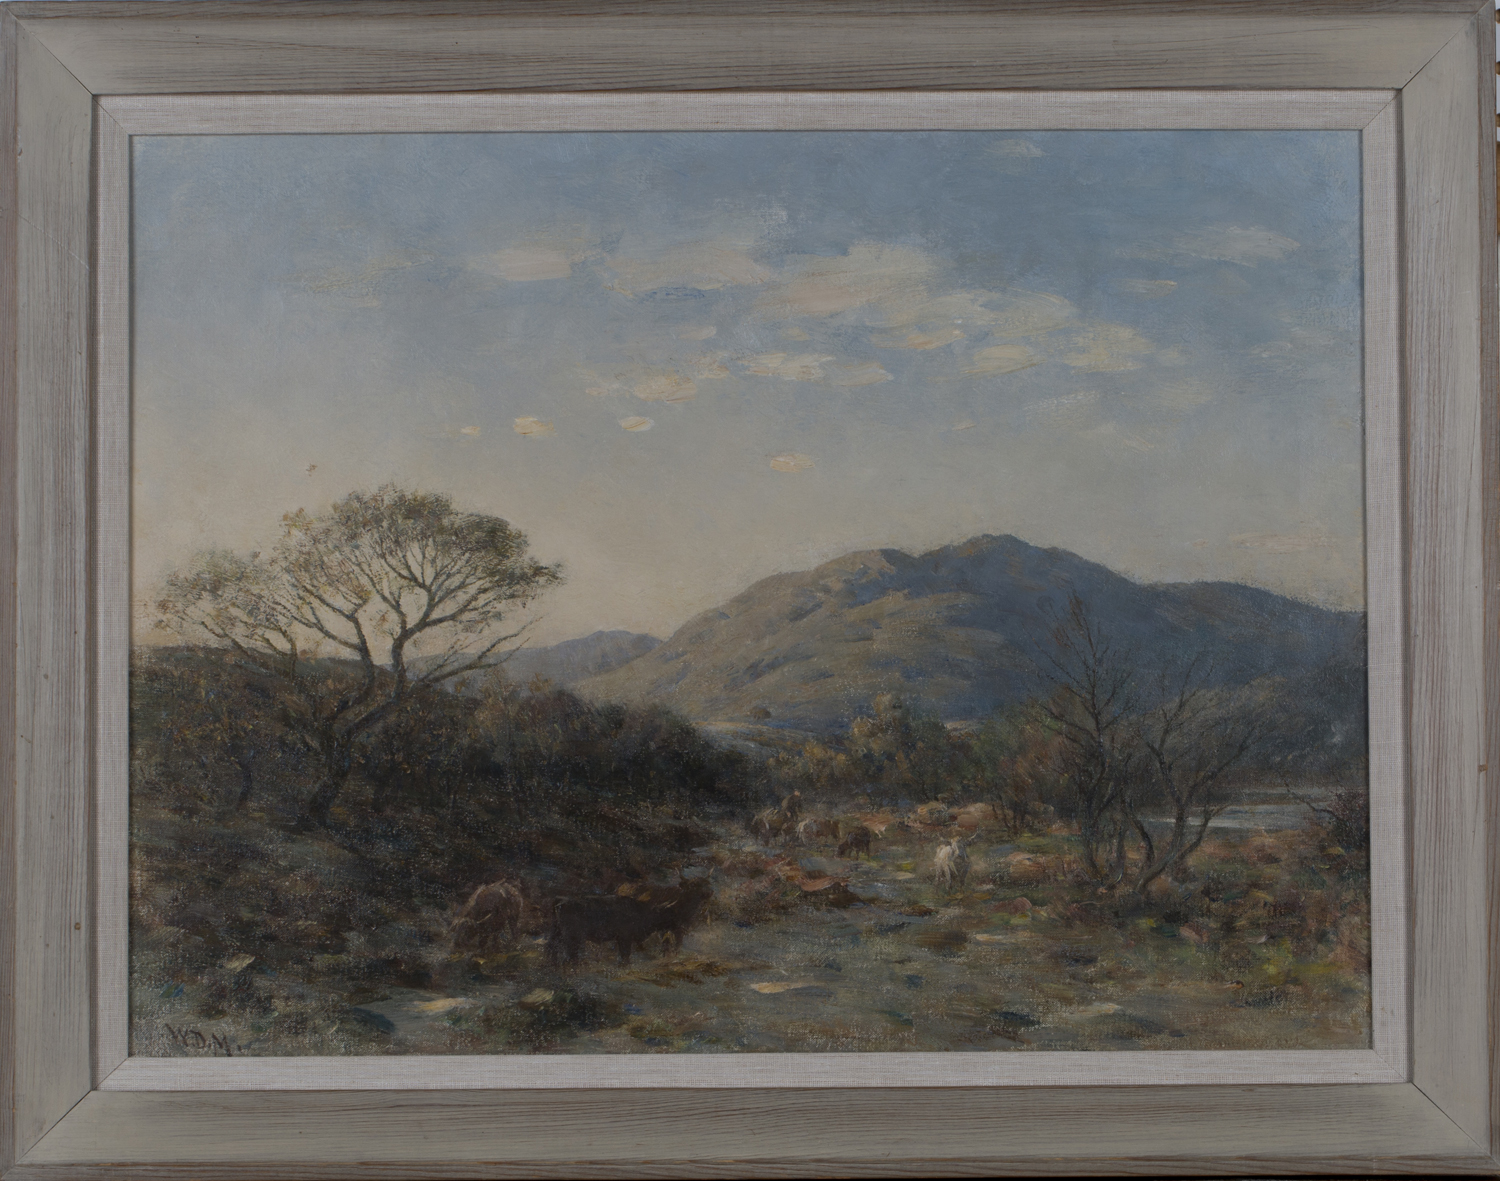 Lot 50 - William Darling McKay - Cattle and Drover in a Landscape, early 20th century oil on canvas, signed